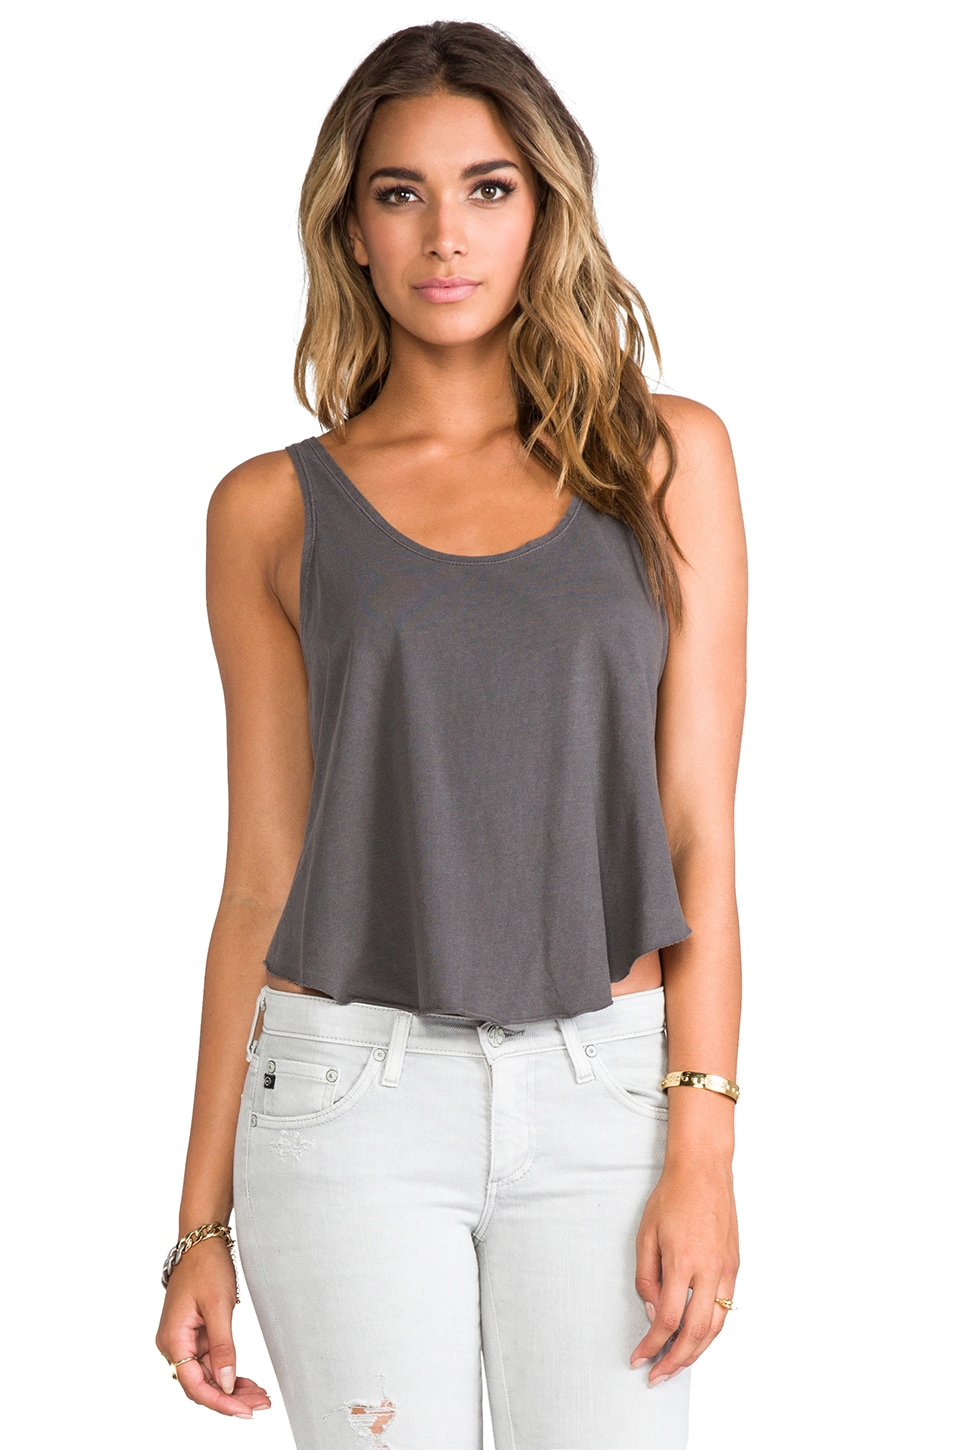 RVCA Label Drape Tank in Shale